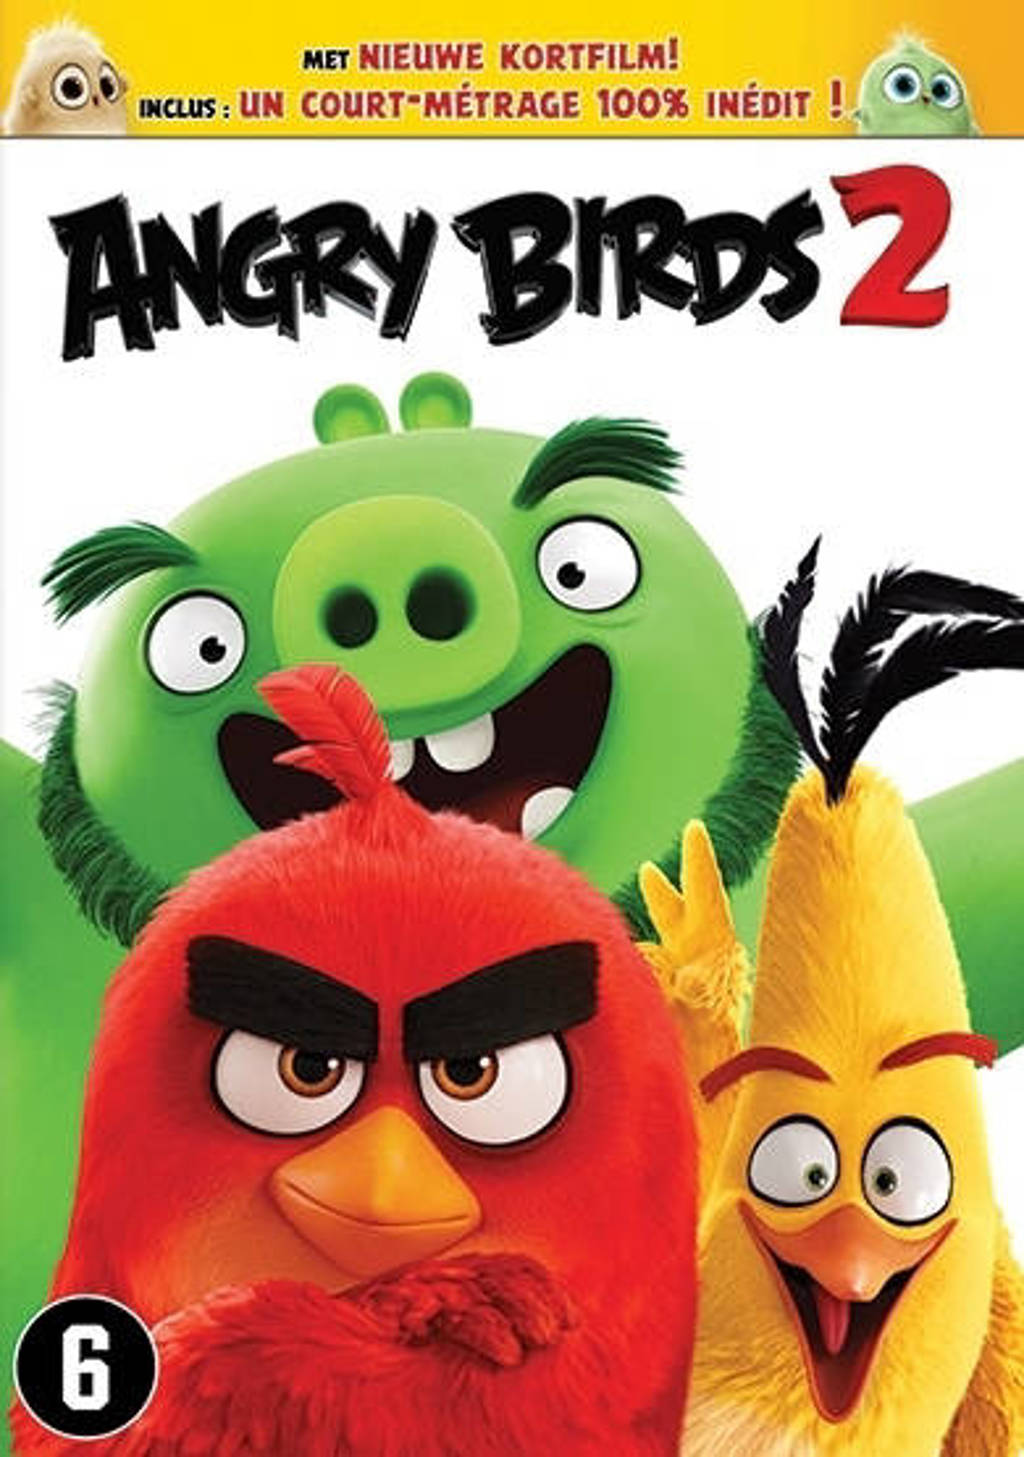 Angry birds movie 2 (NL-only) (DVD)